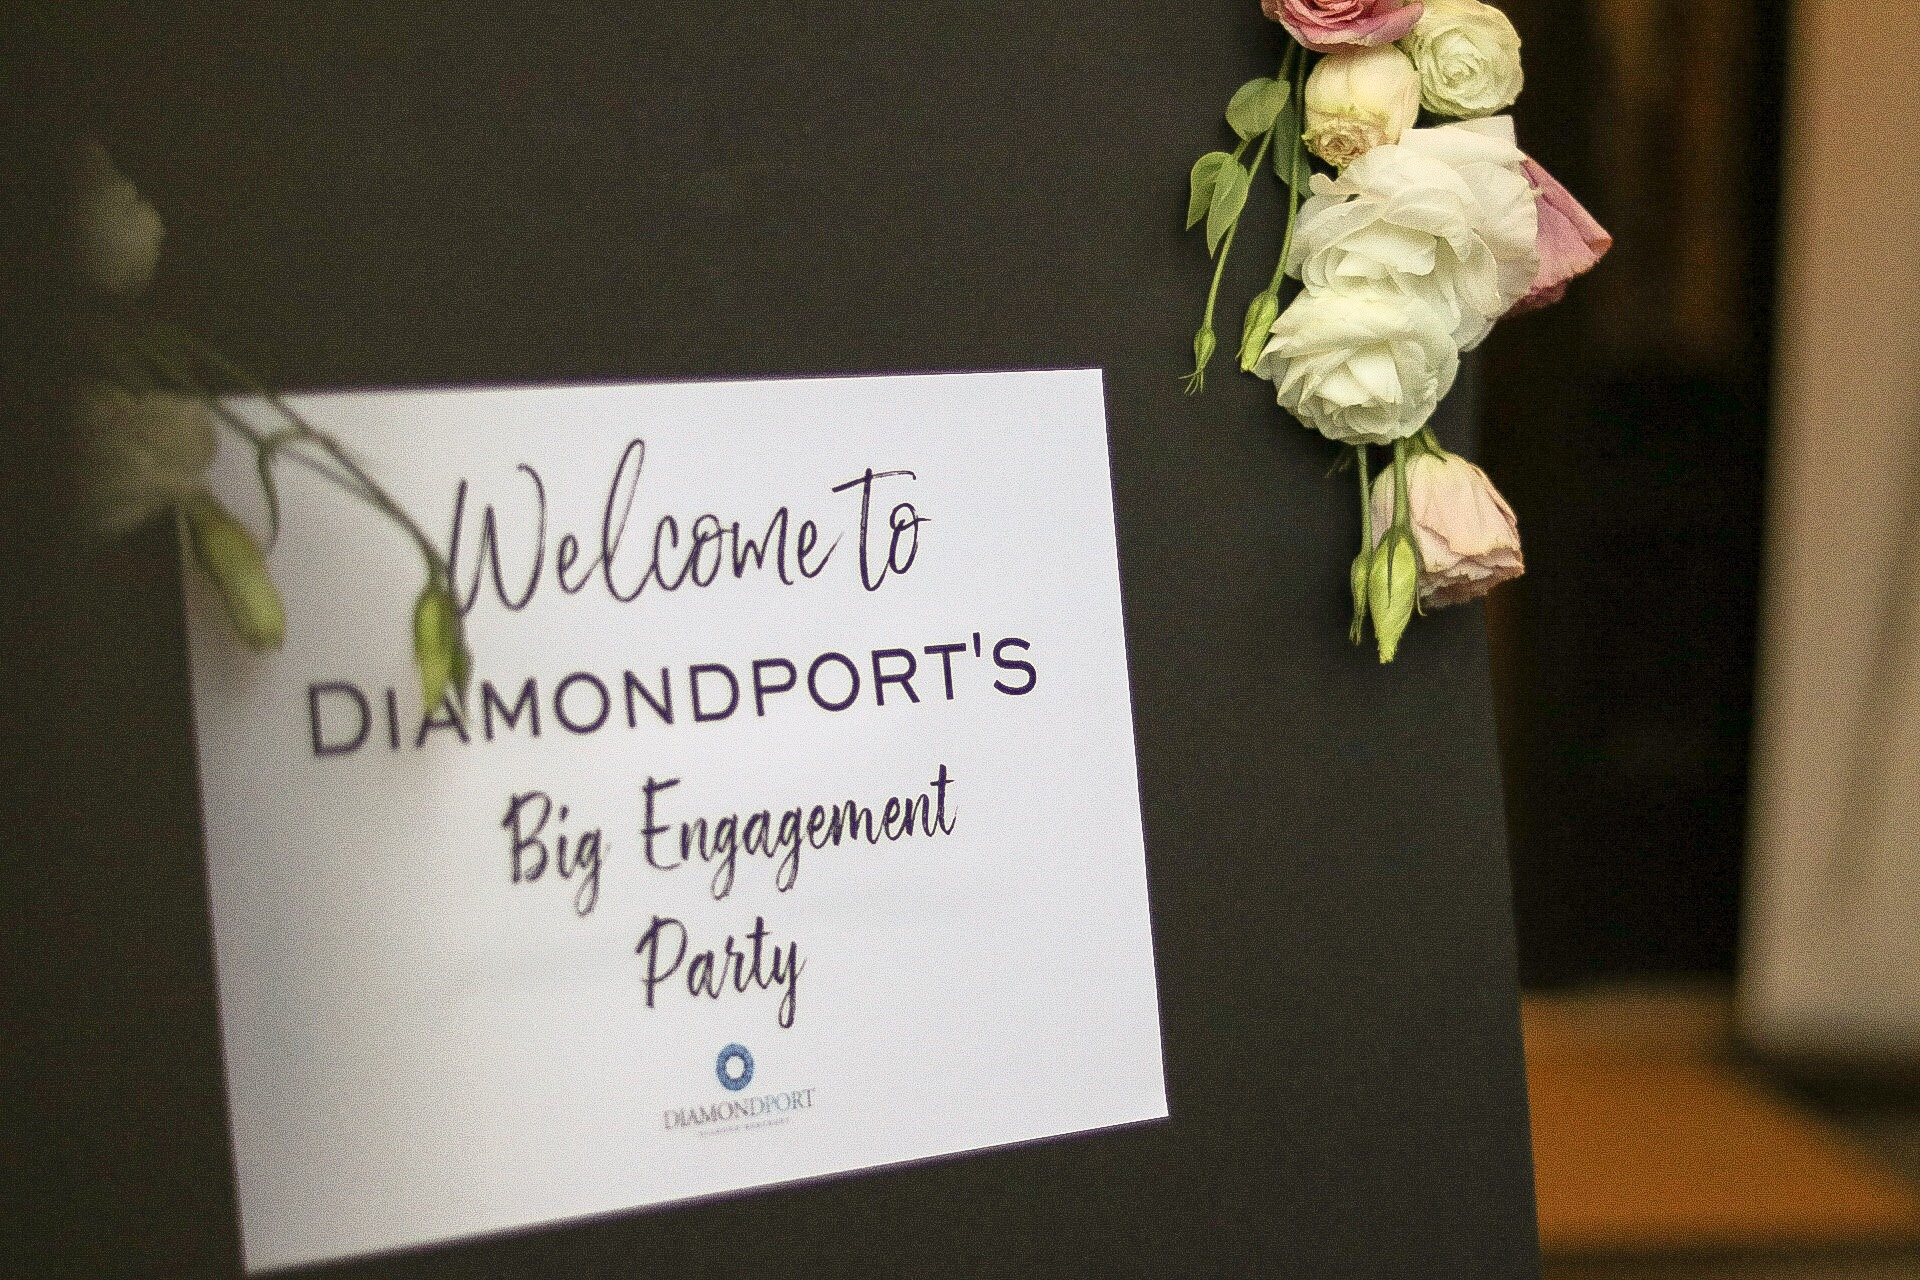 Wedding, engagement, diamondport, diamondport brisbane, diamonds, love, engaged